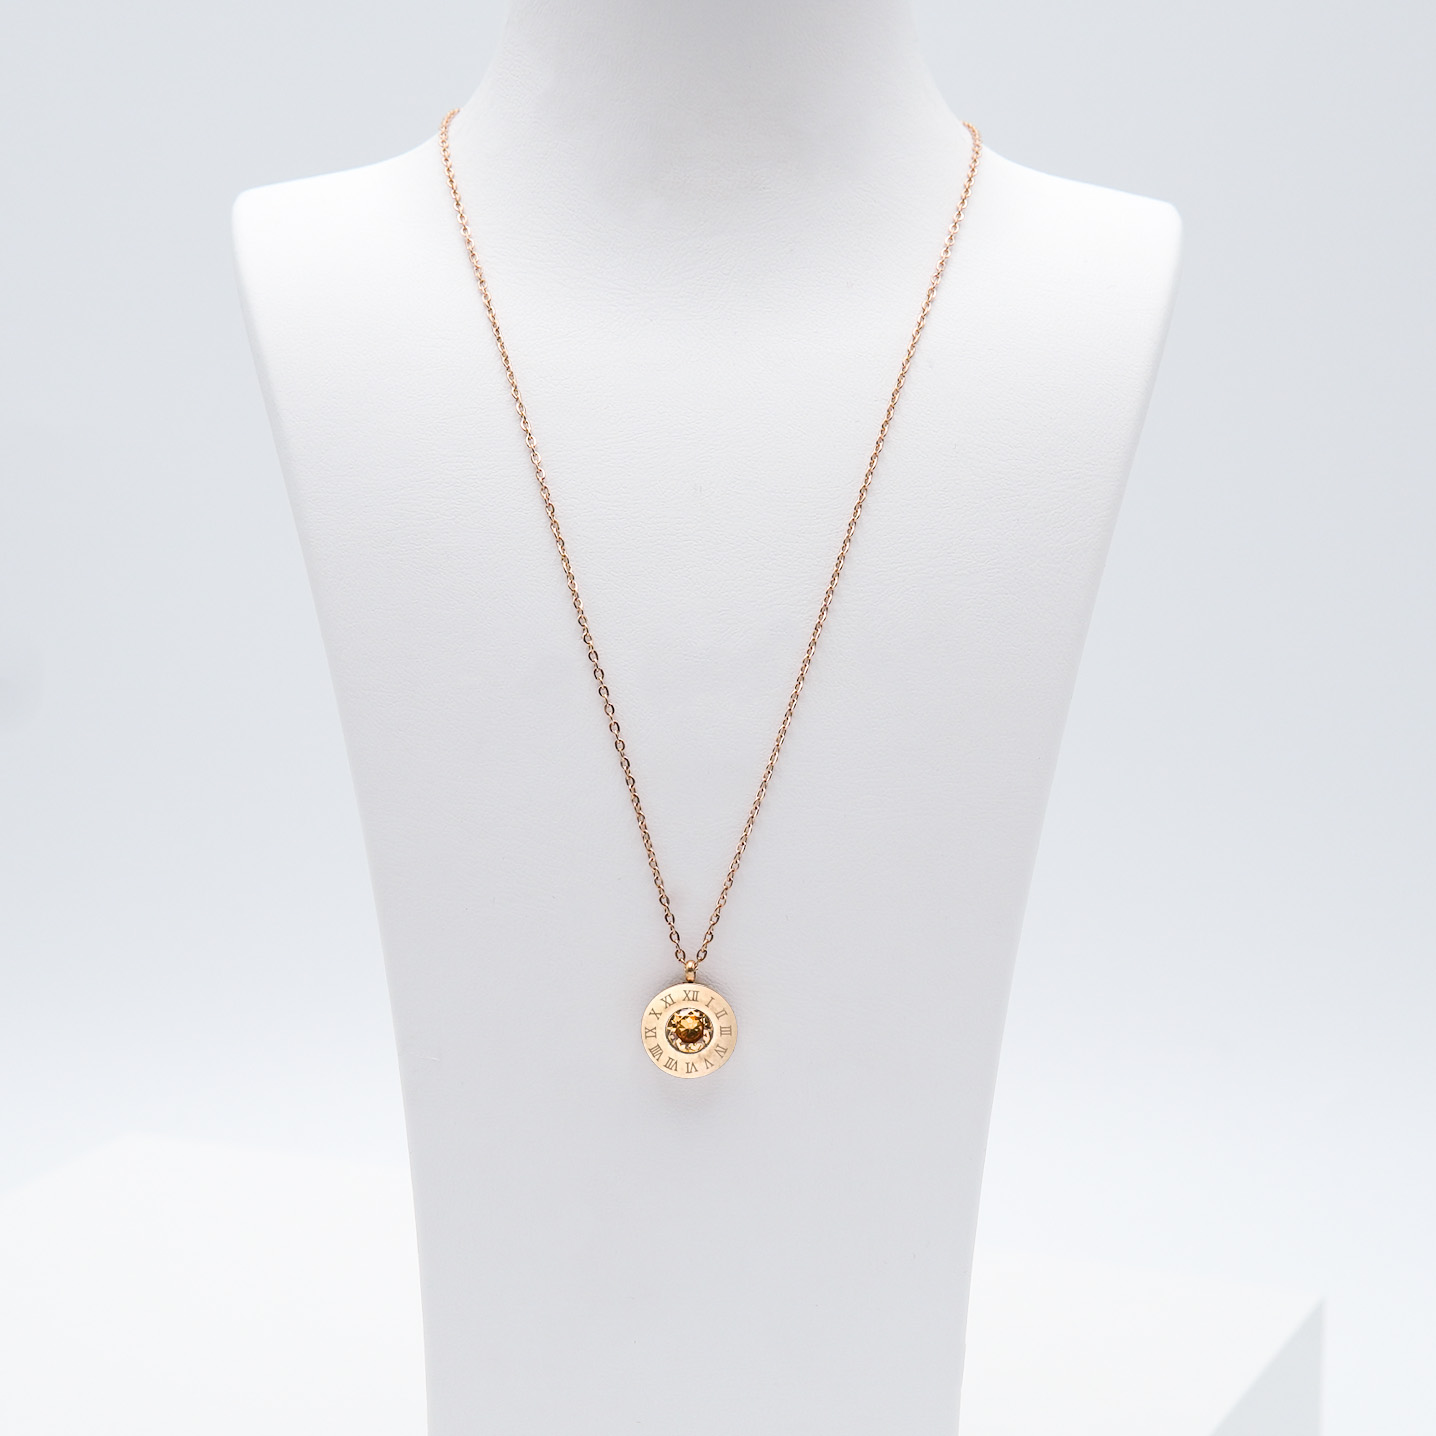 4- 4 Queen Diamonds Necklace Rose Edition Halsband Modern and trendy Necklace and women jewelry and accessories from SWEVALI fashion Sweden